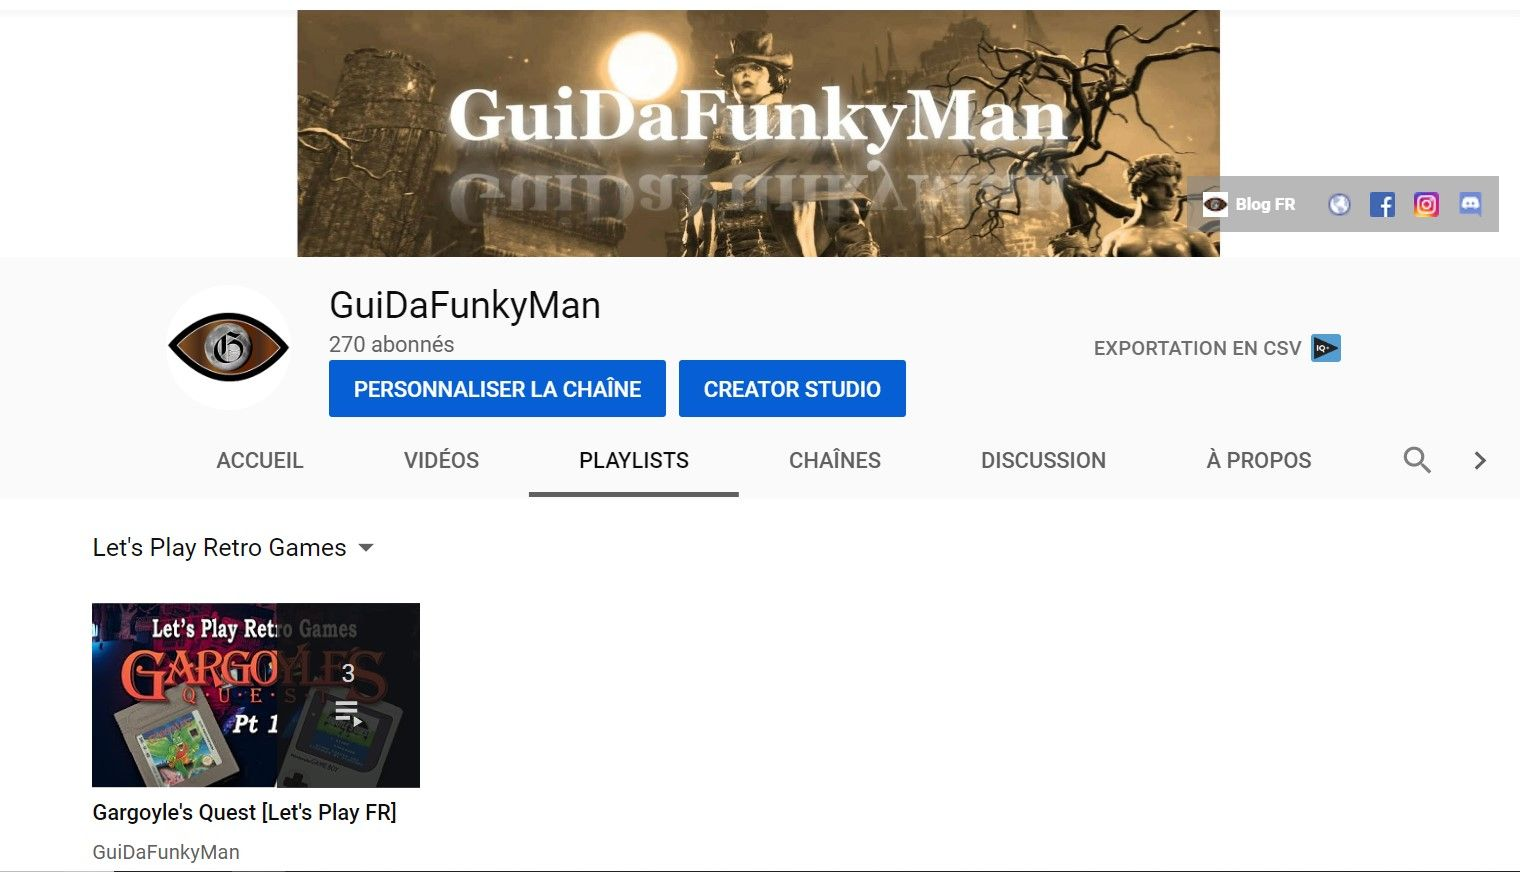 Ma nouvelle section YouTube consacrée aux jeux vidéo retro #GuiDaFunkyManRetroGaming #GuiDaFunkyMan #Retrogames #Retrogaming #GargoylesQuest #GameBoy #Retrendogames #RetrendoGaming